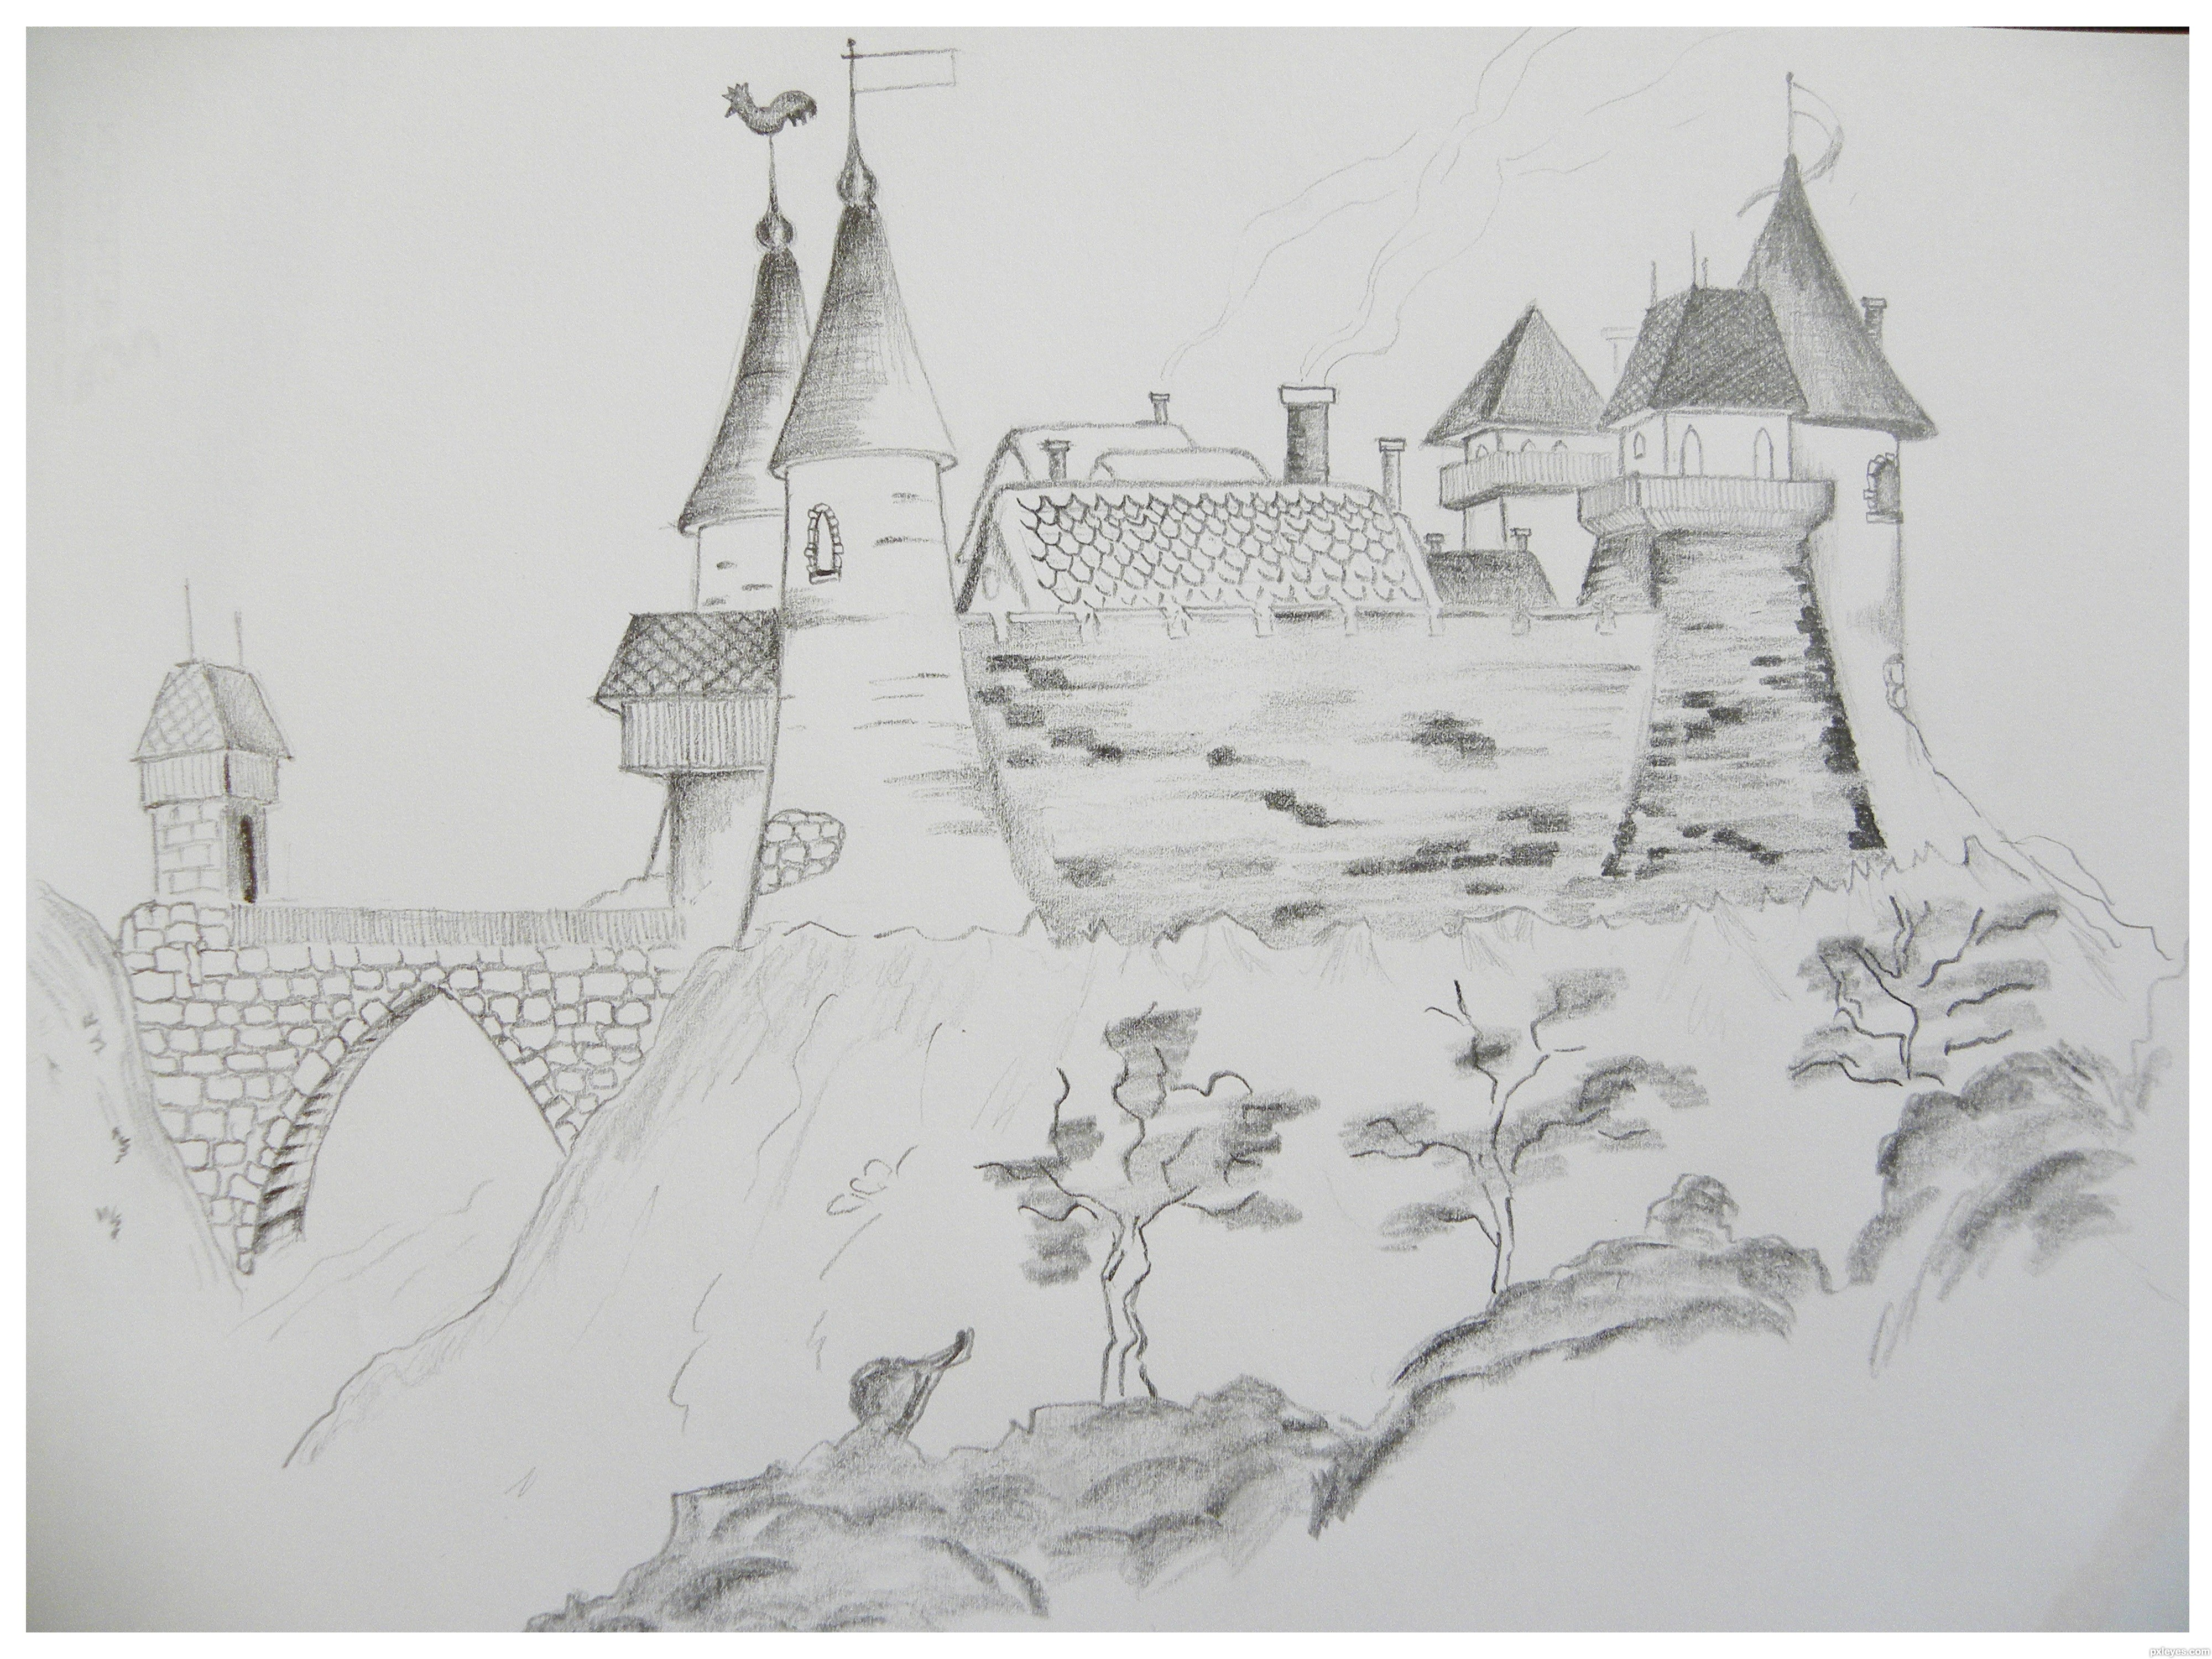 Castles Drawing Contest (18996), Pictures Page 1 - Pxleyes.com